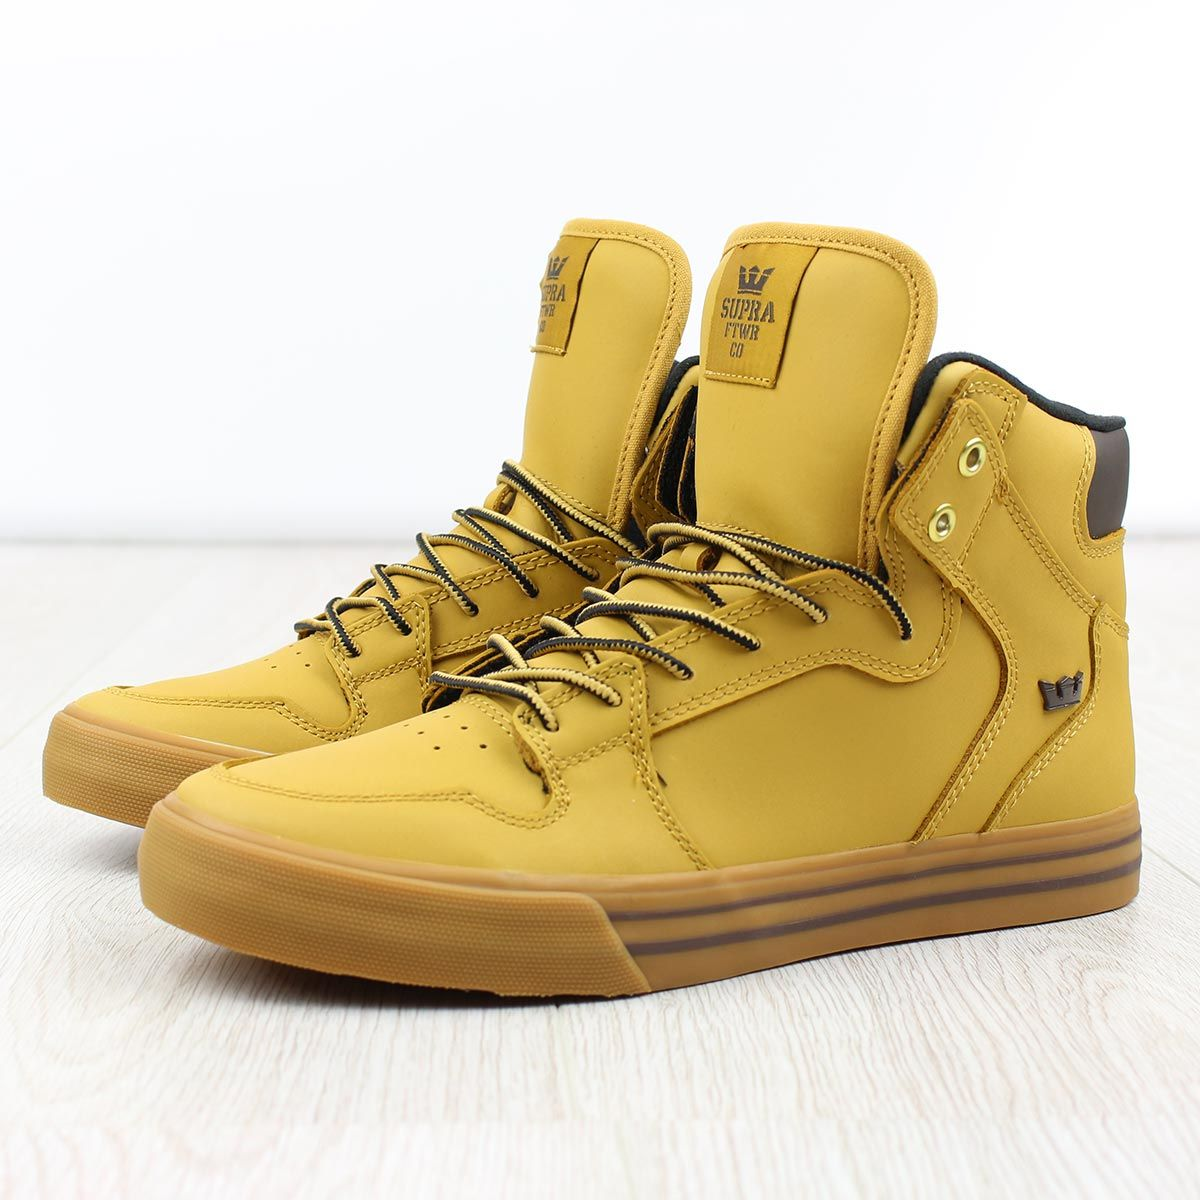 ed6f2a454047 Supra Vaider High Top Shoes - Amber Gold Gum